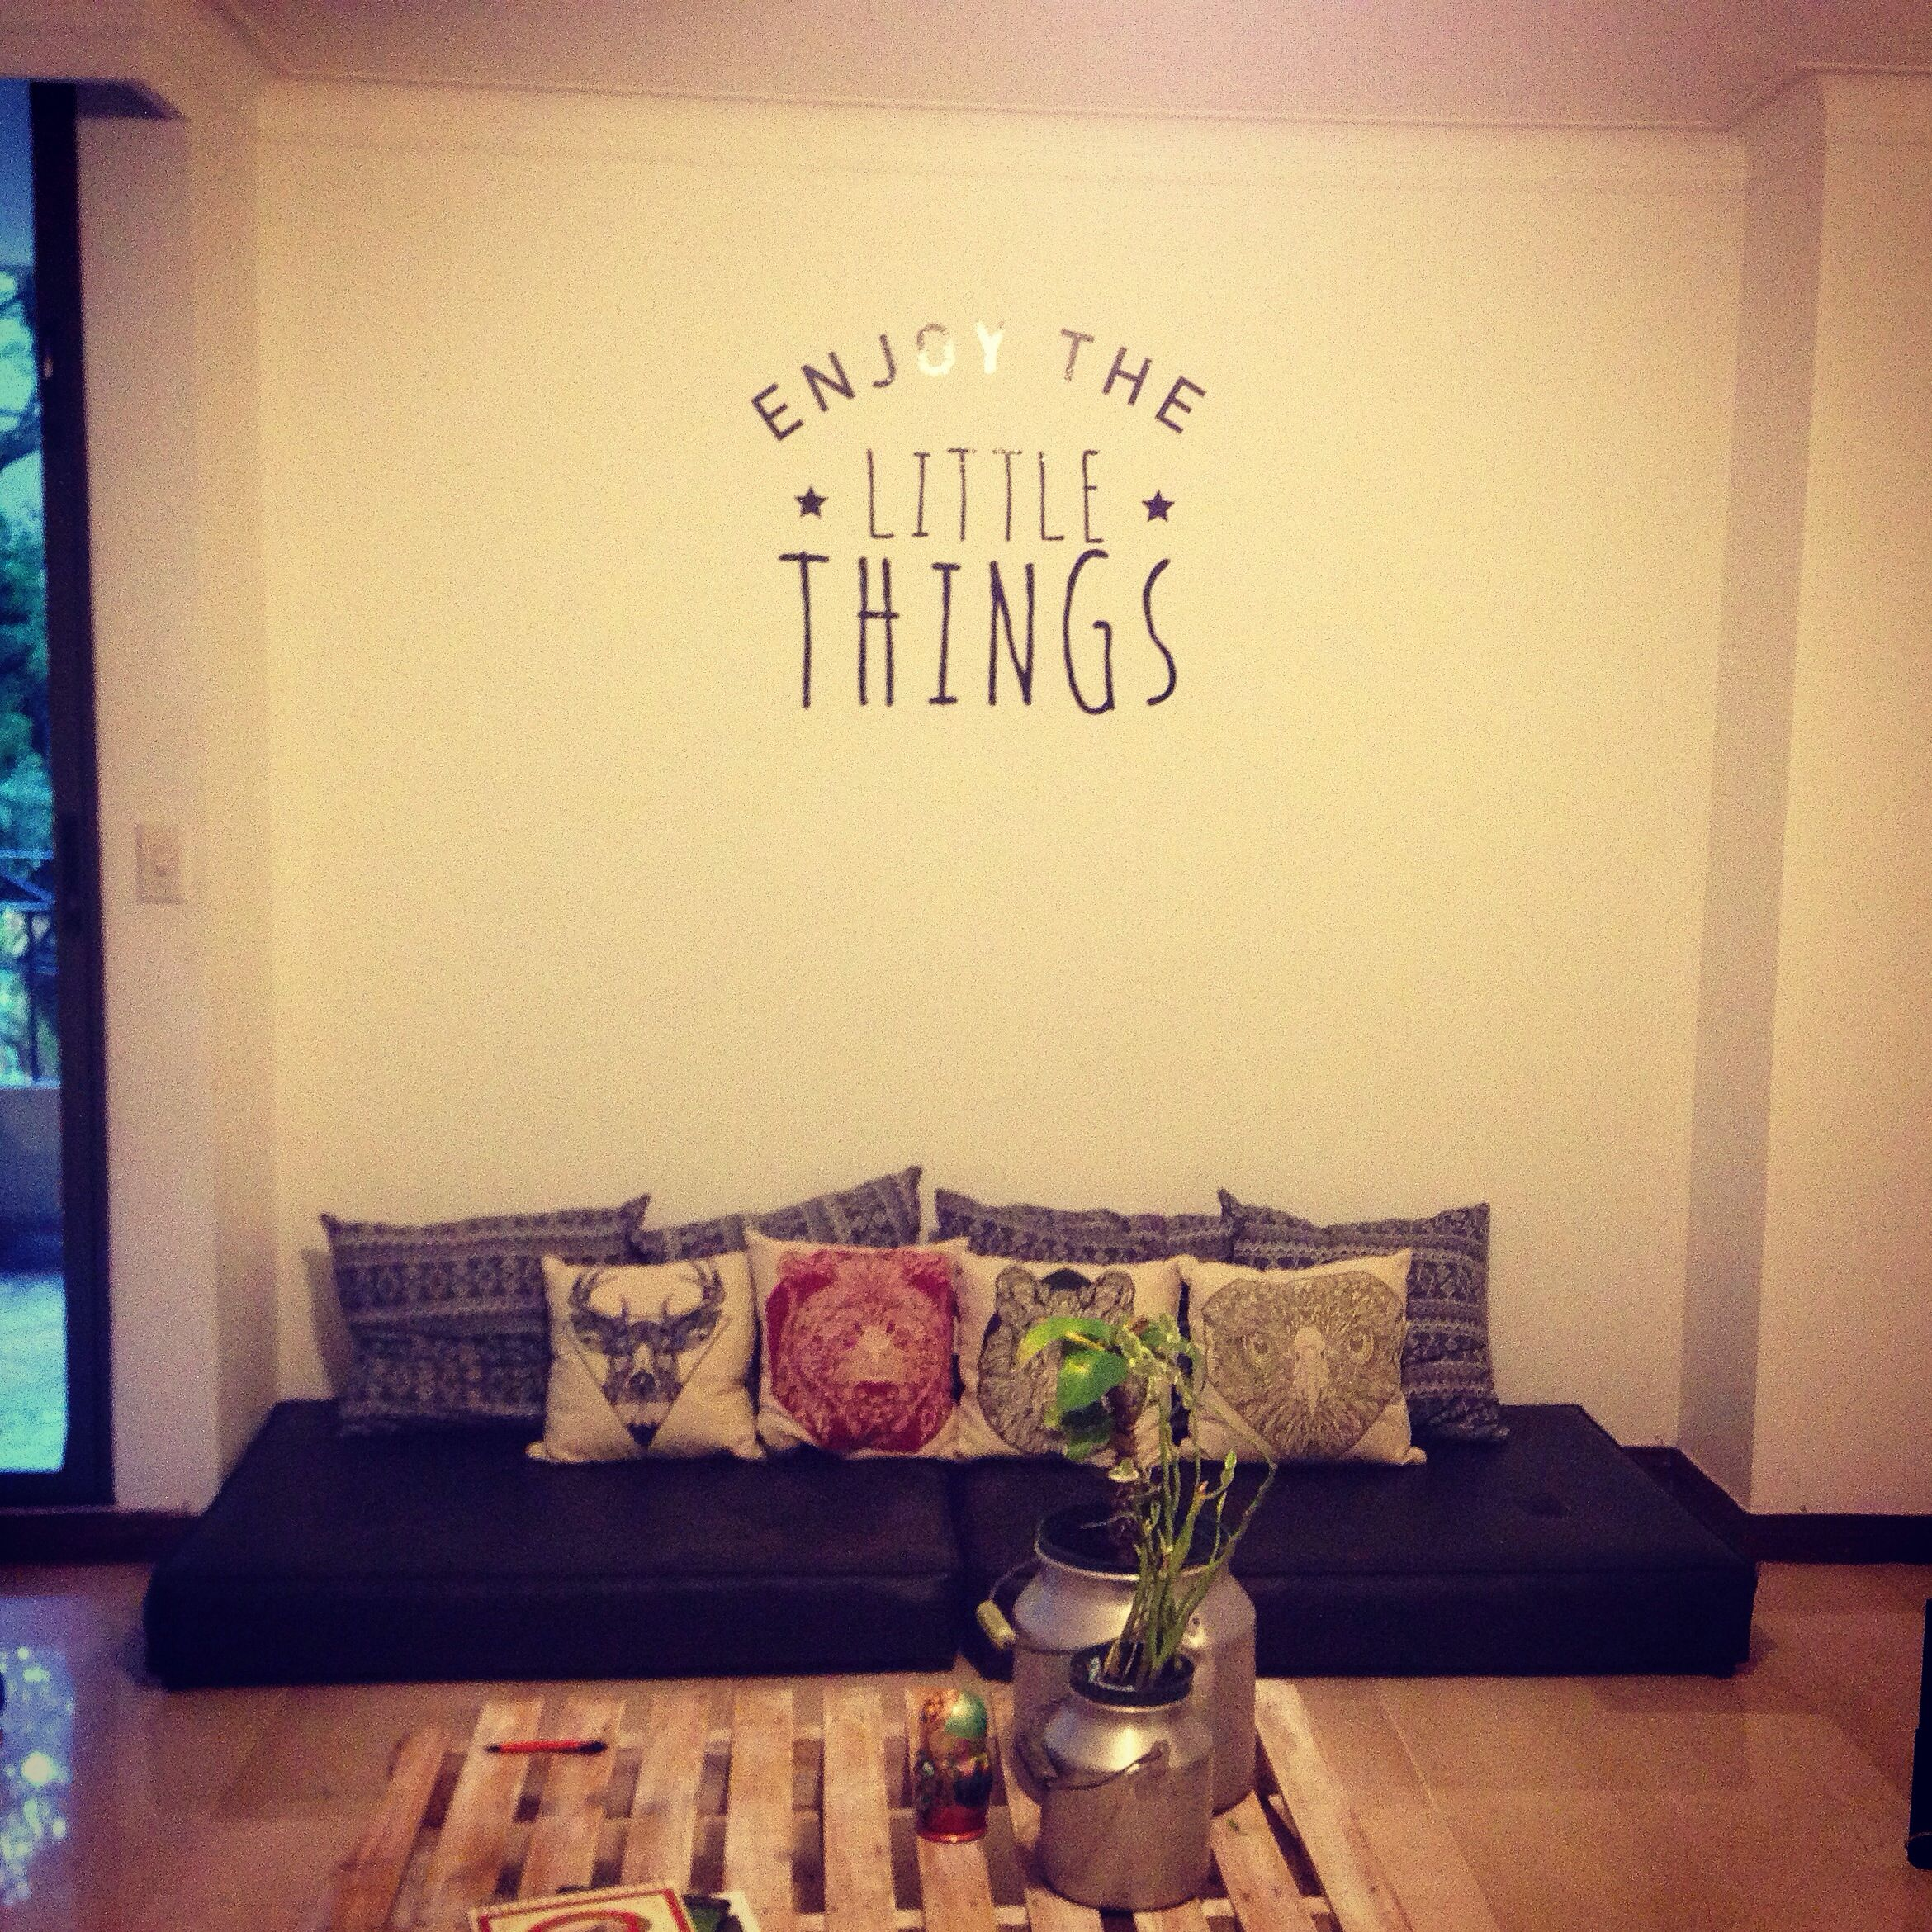 Living room #living #room #quote #design #home #decor | My Home ...